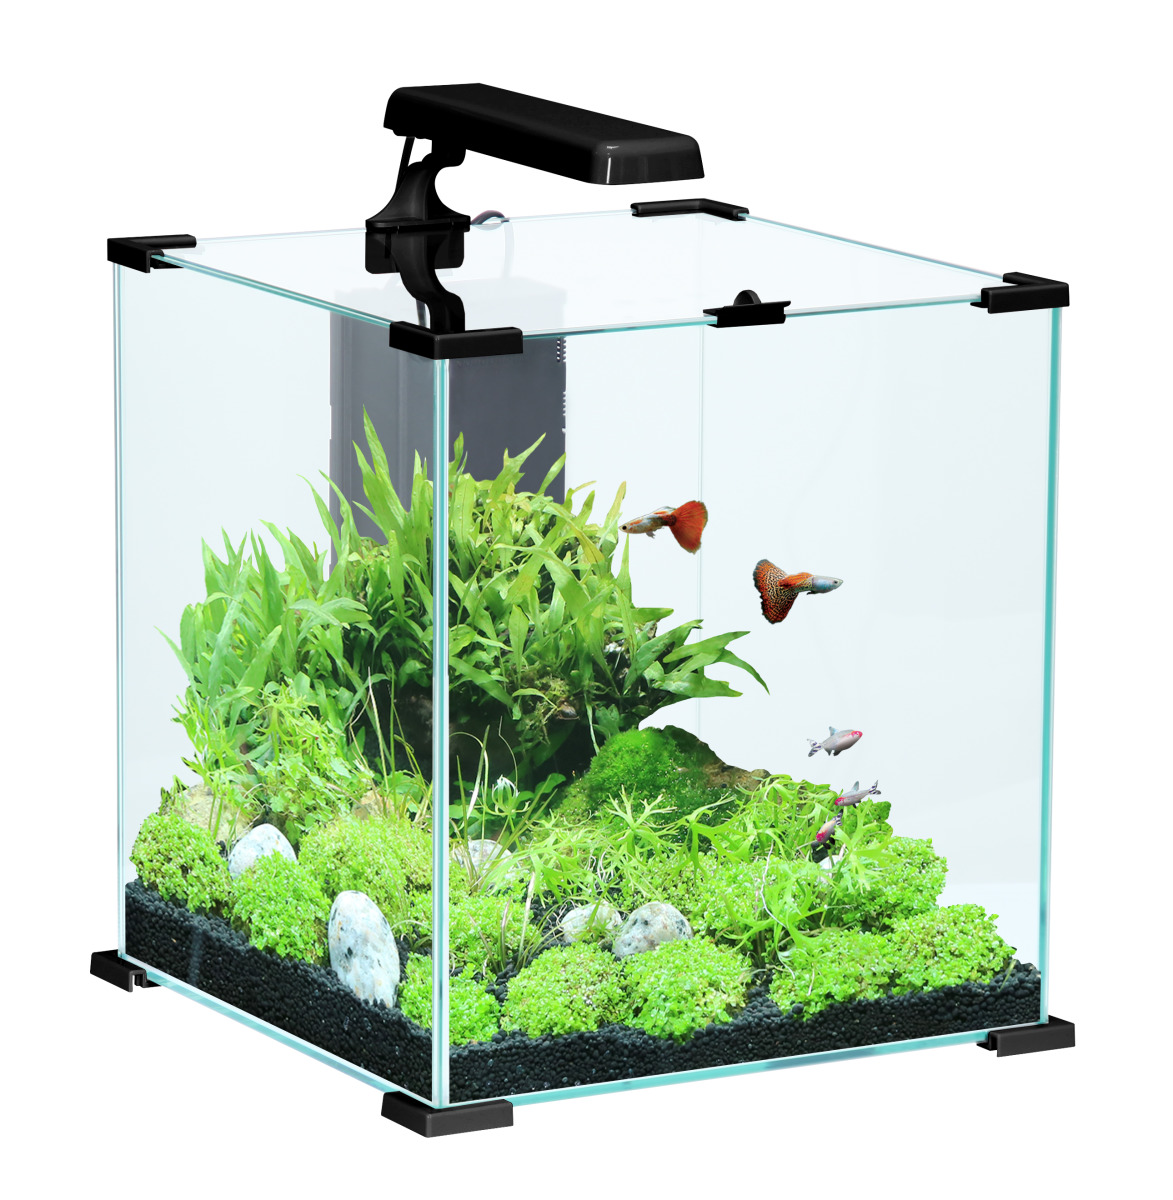 zolux aqua nanolife cube 30 noir nano aquarium 33 l tout. Black Bedroom Furniture Sets. Home Design Ideas